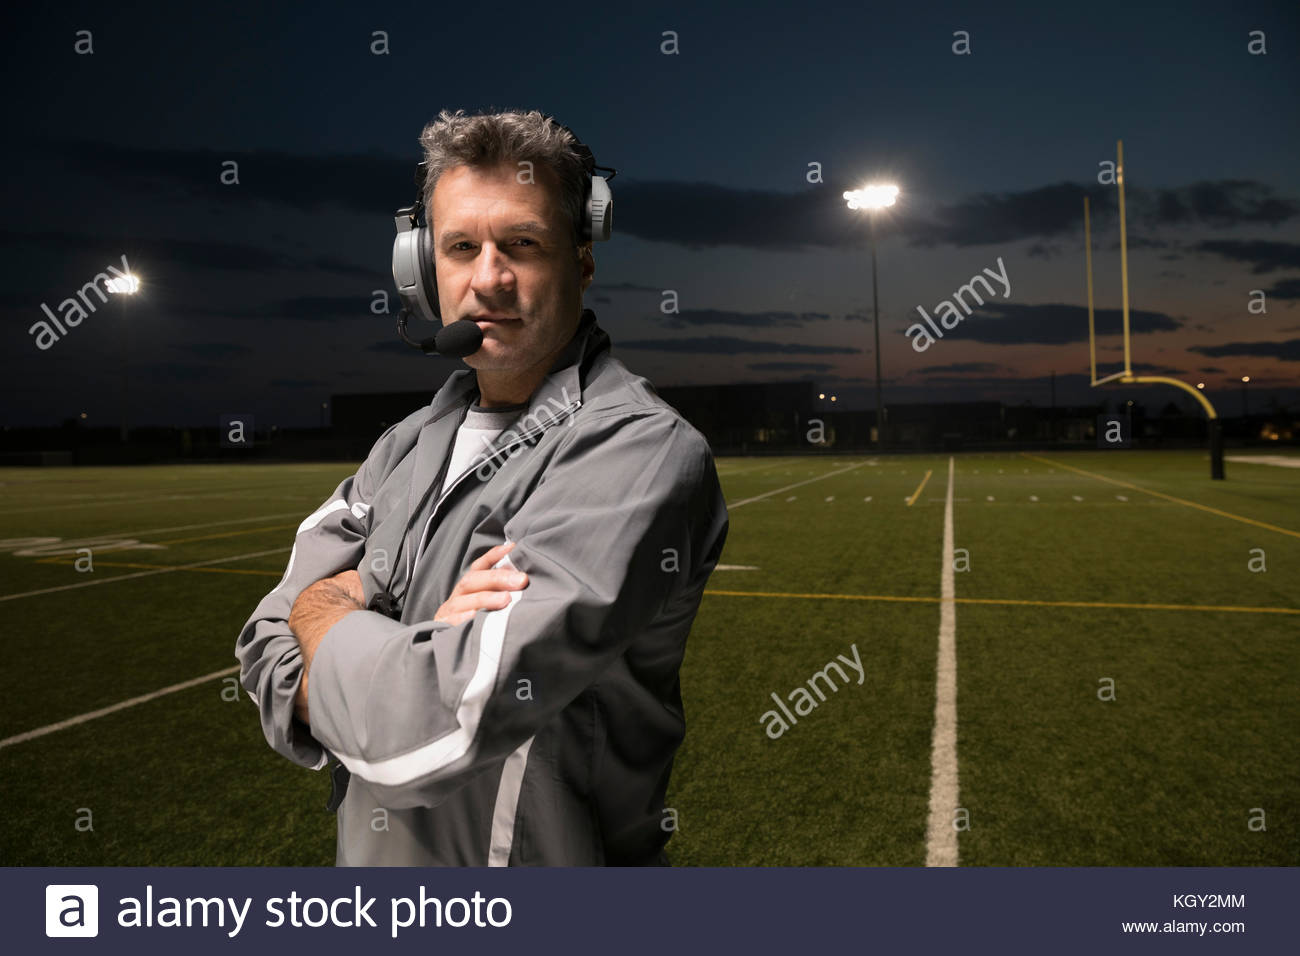 Portrait confident, tough high school football coach wearing headset on football field at night - Stock Image